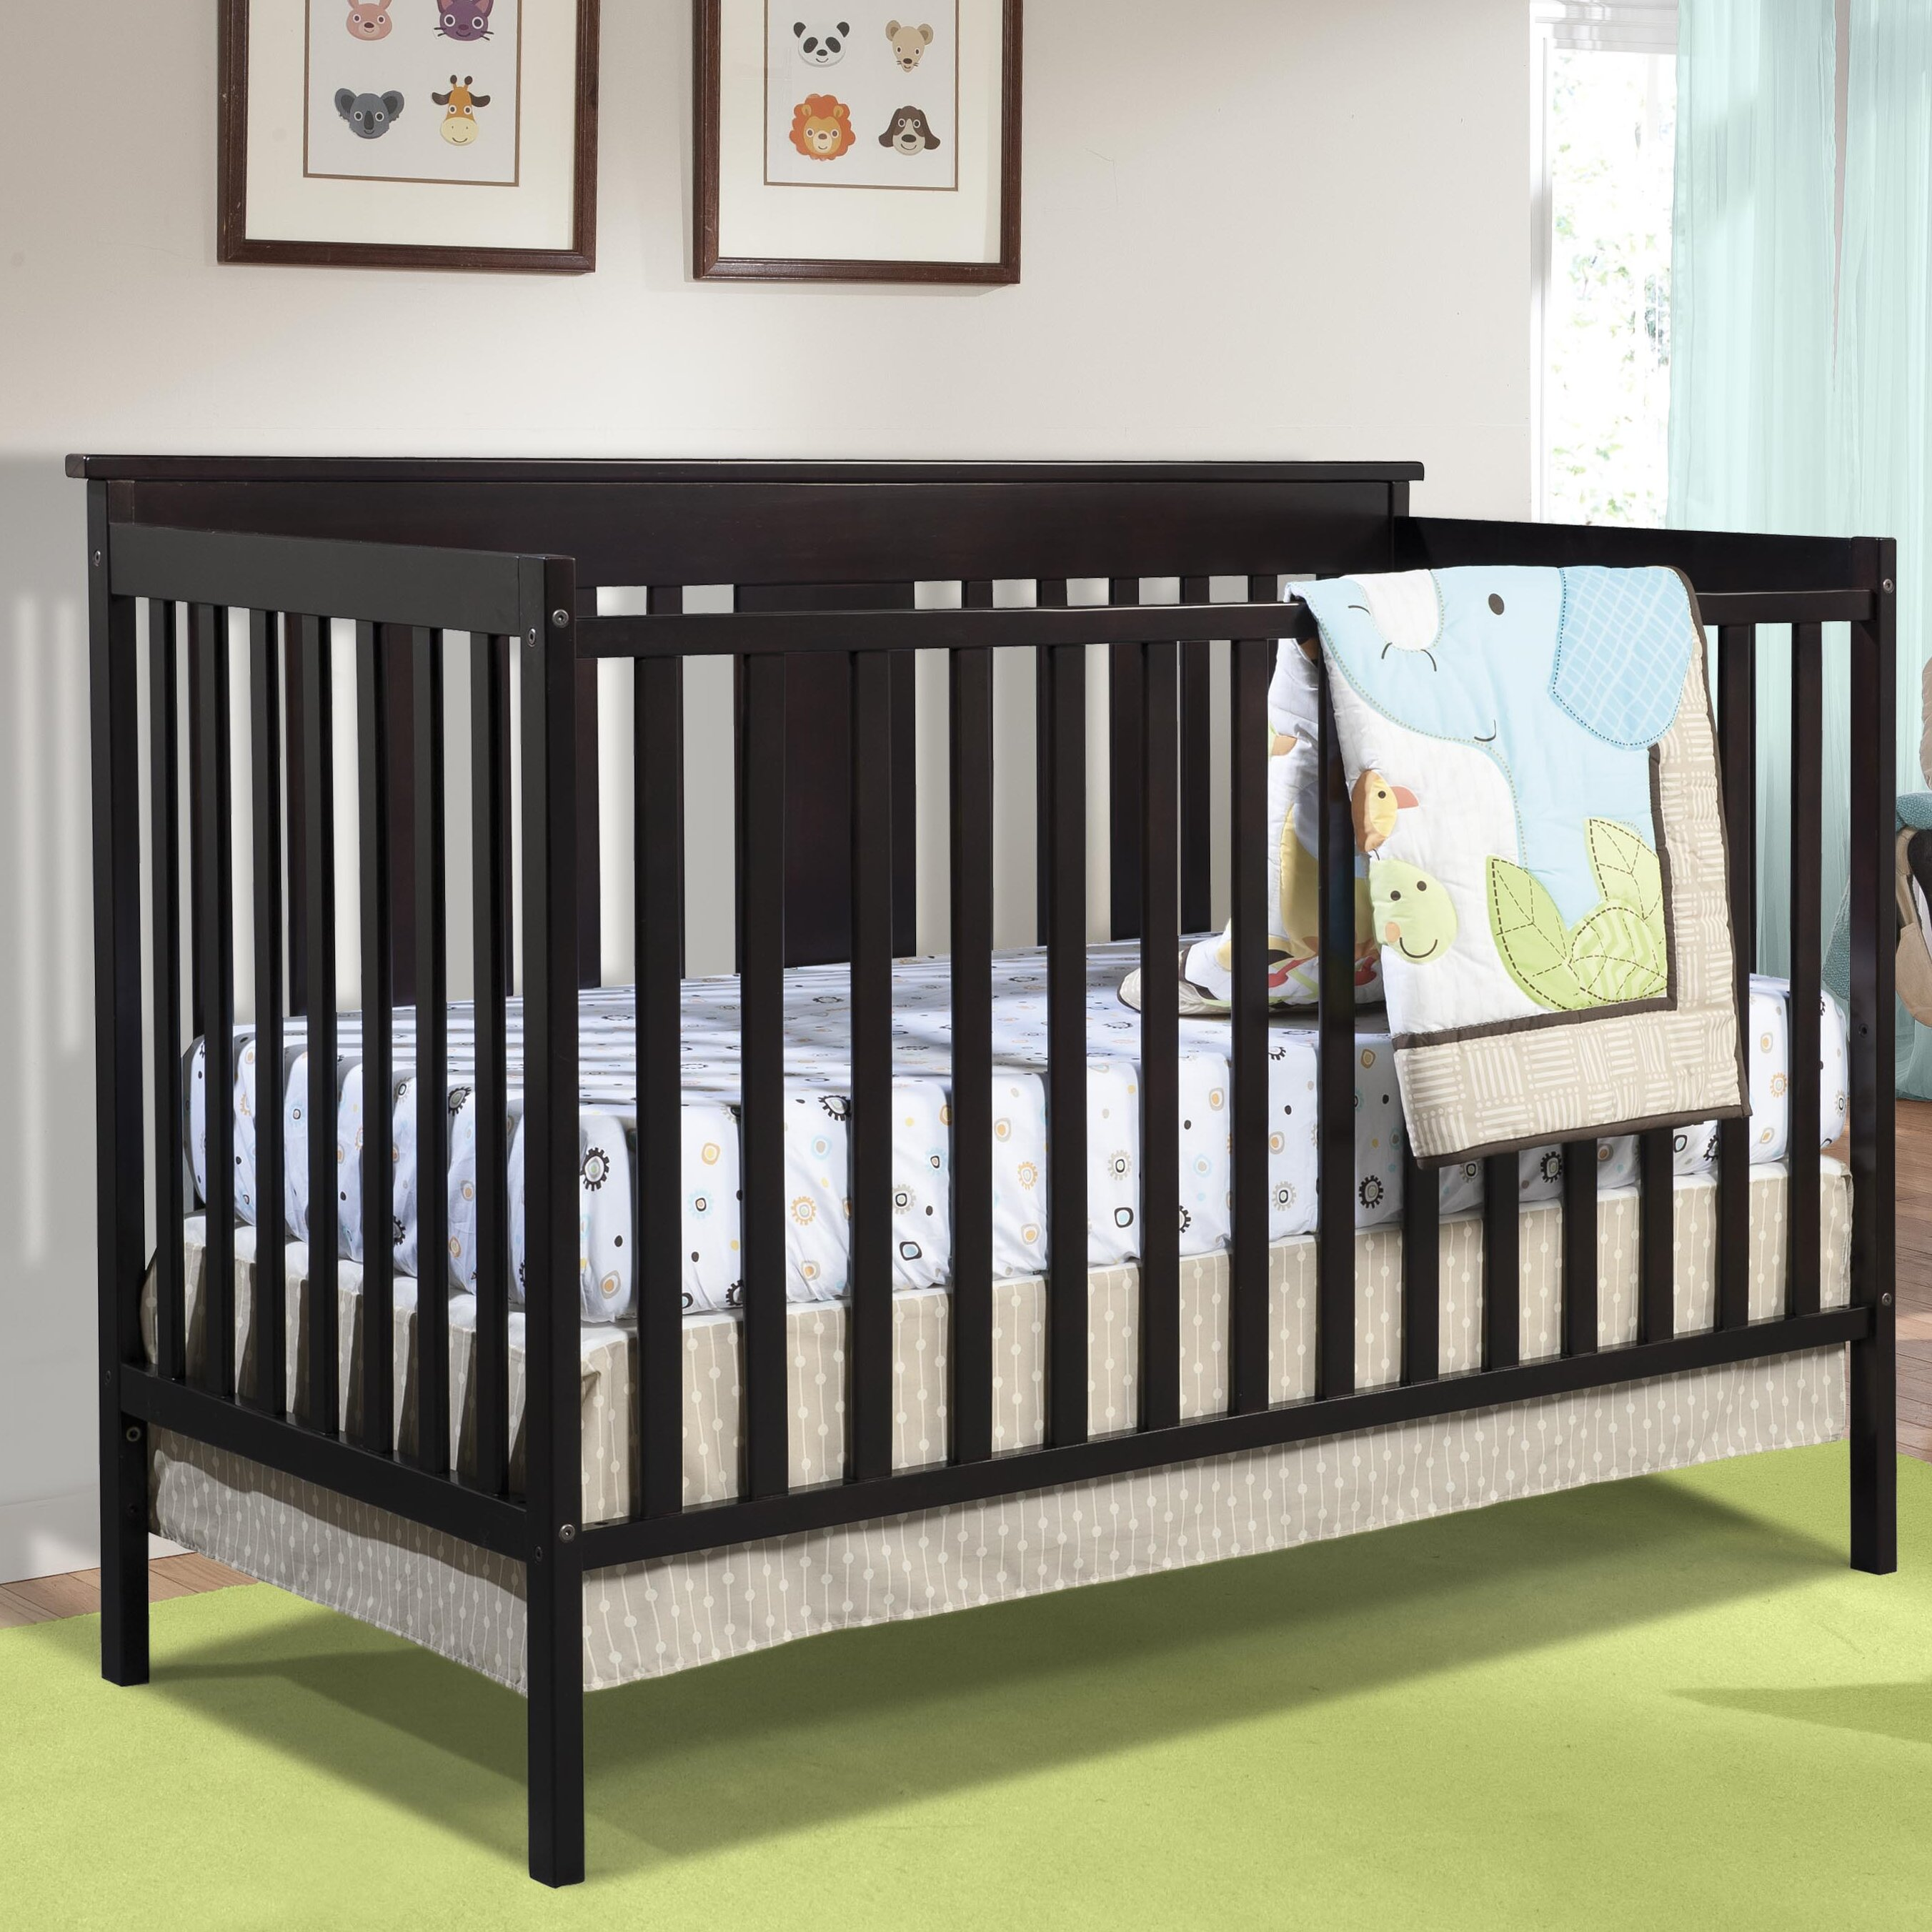 Baby bed hs code - Storkcraft Mission Ridge Stages 3 In 1 Convertible Crib